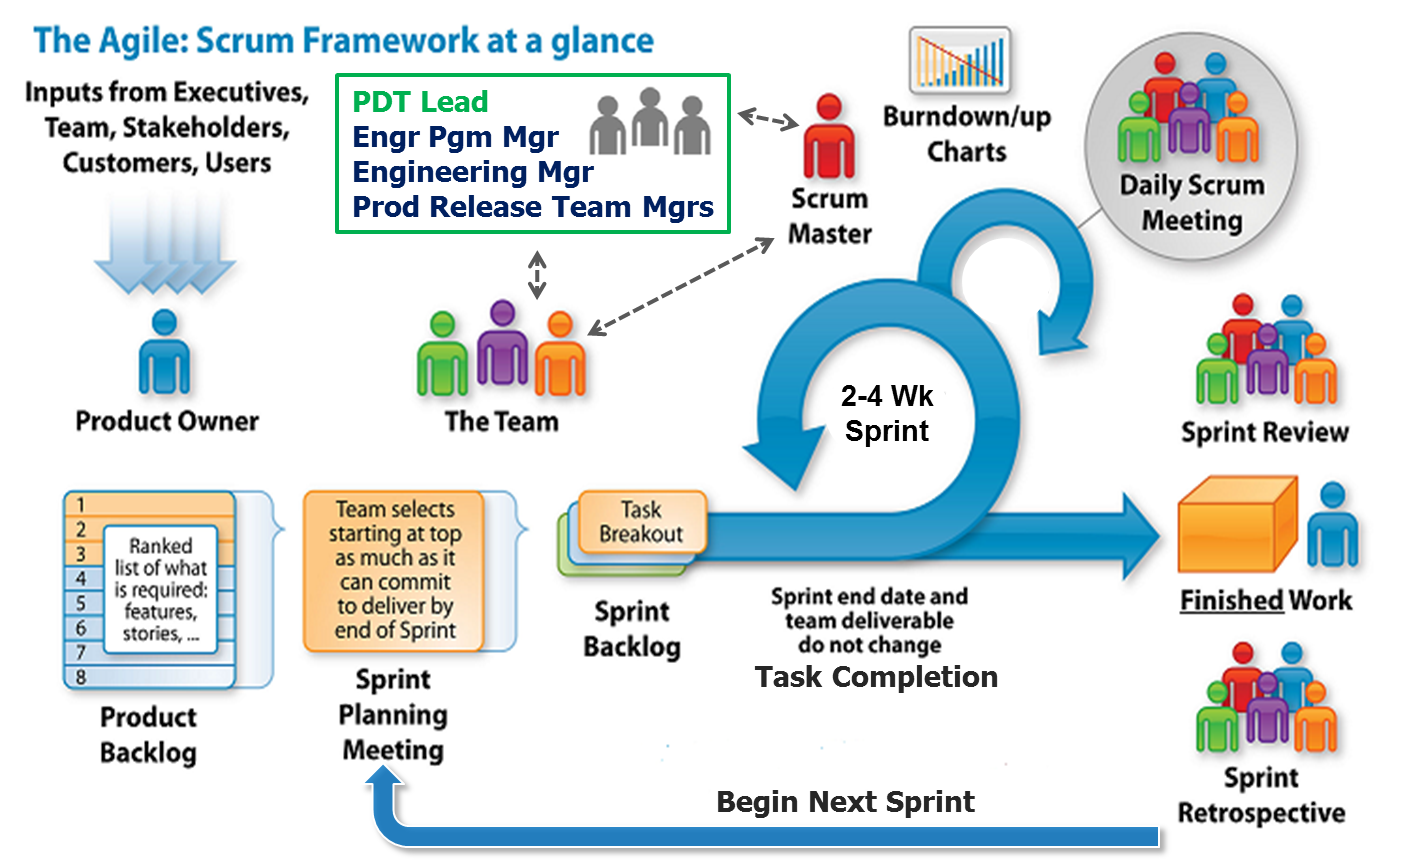 agile scrum methodology | agile scrum methodology | Pinterest